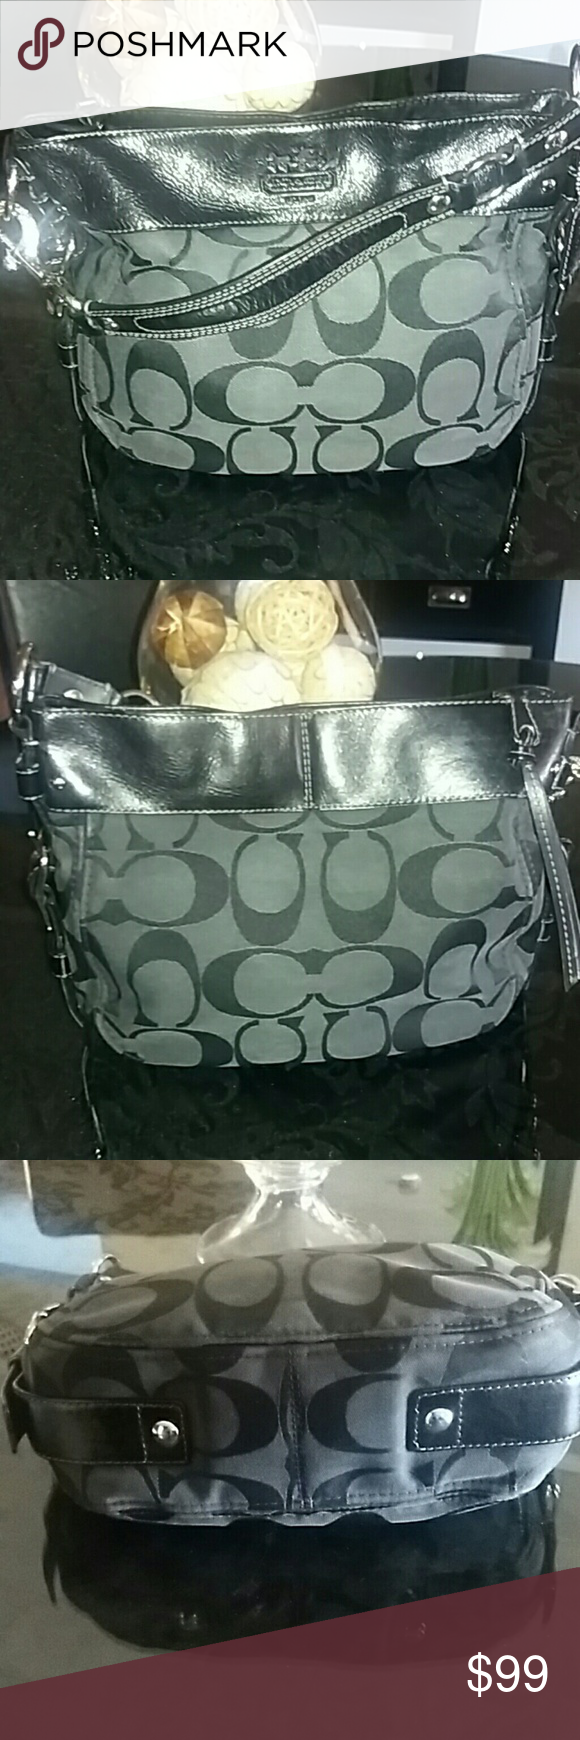 Coach Signature Collection Carly Hobo Bag Like New, Immaculate condition,  color black, light 0b6877cfad